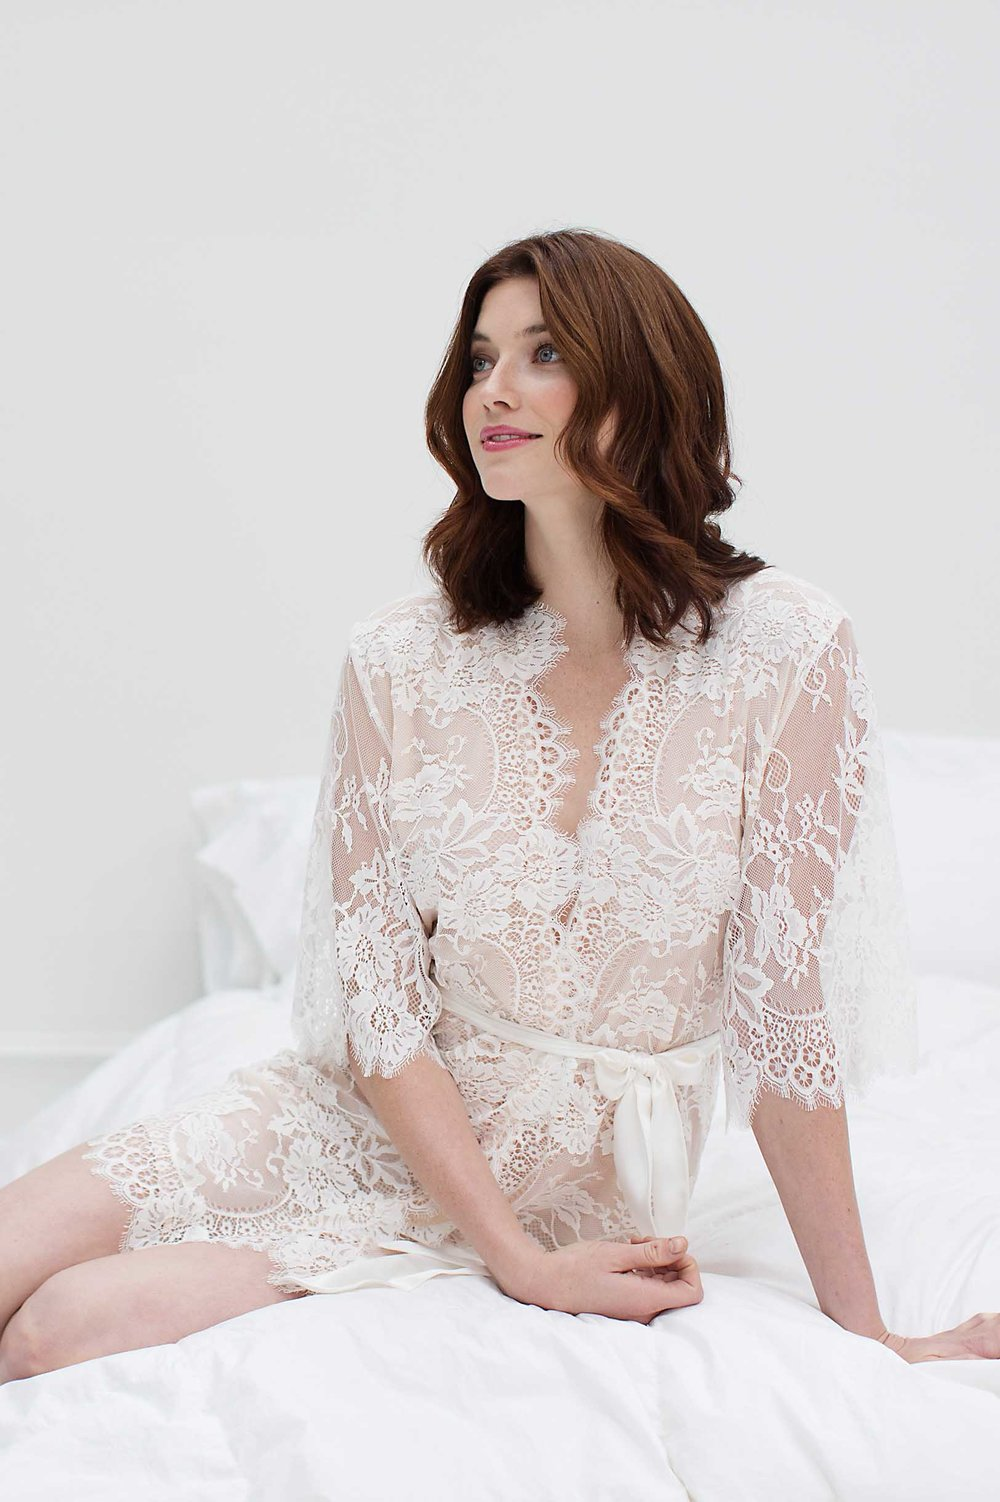 bcb912be022 Swan Queen lace robe ivory blush lined 104SH getting ready wedding day.jpg